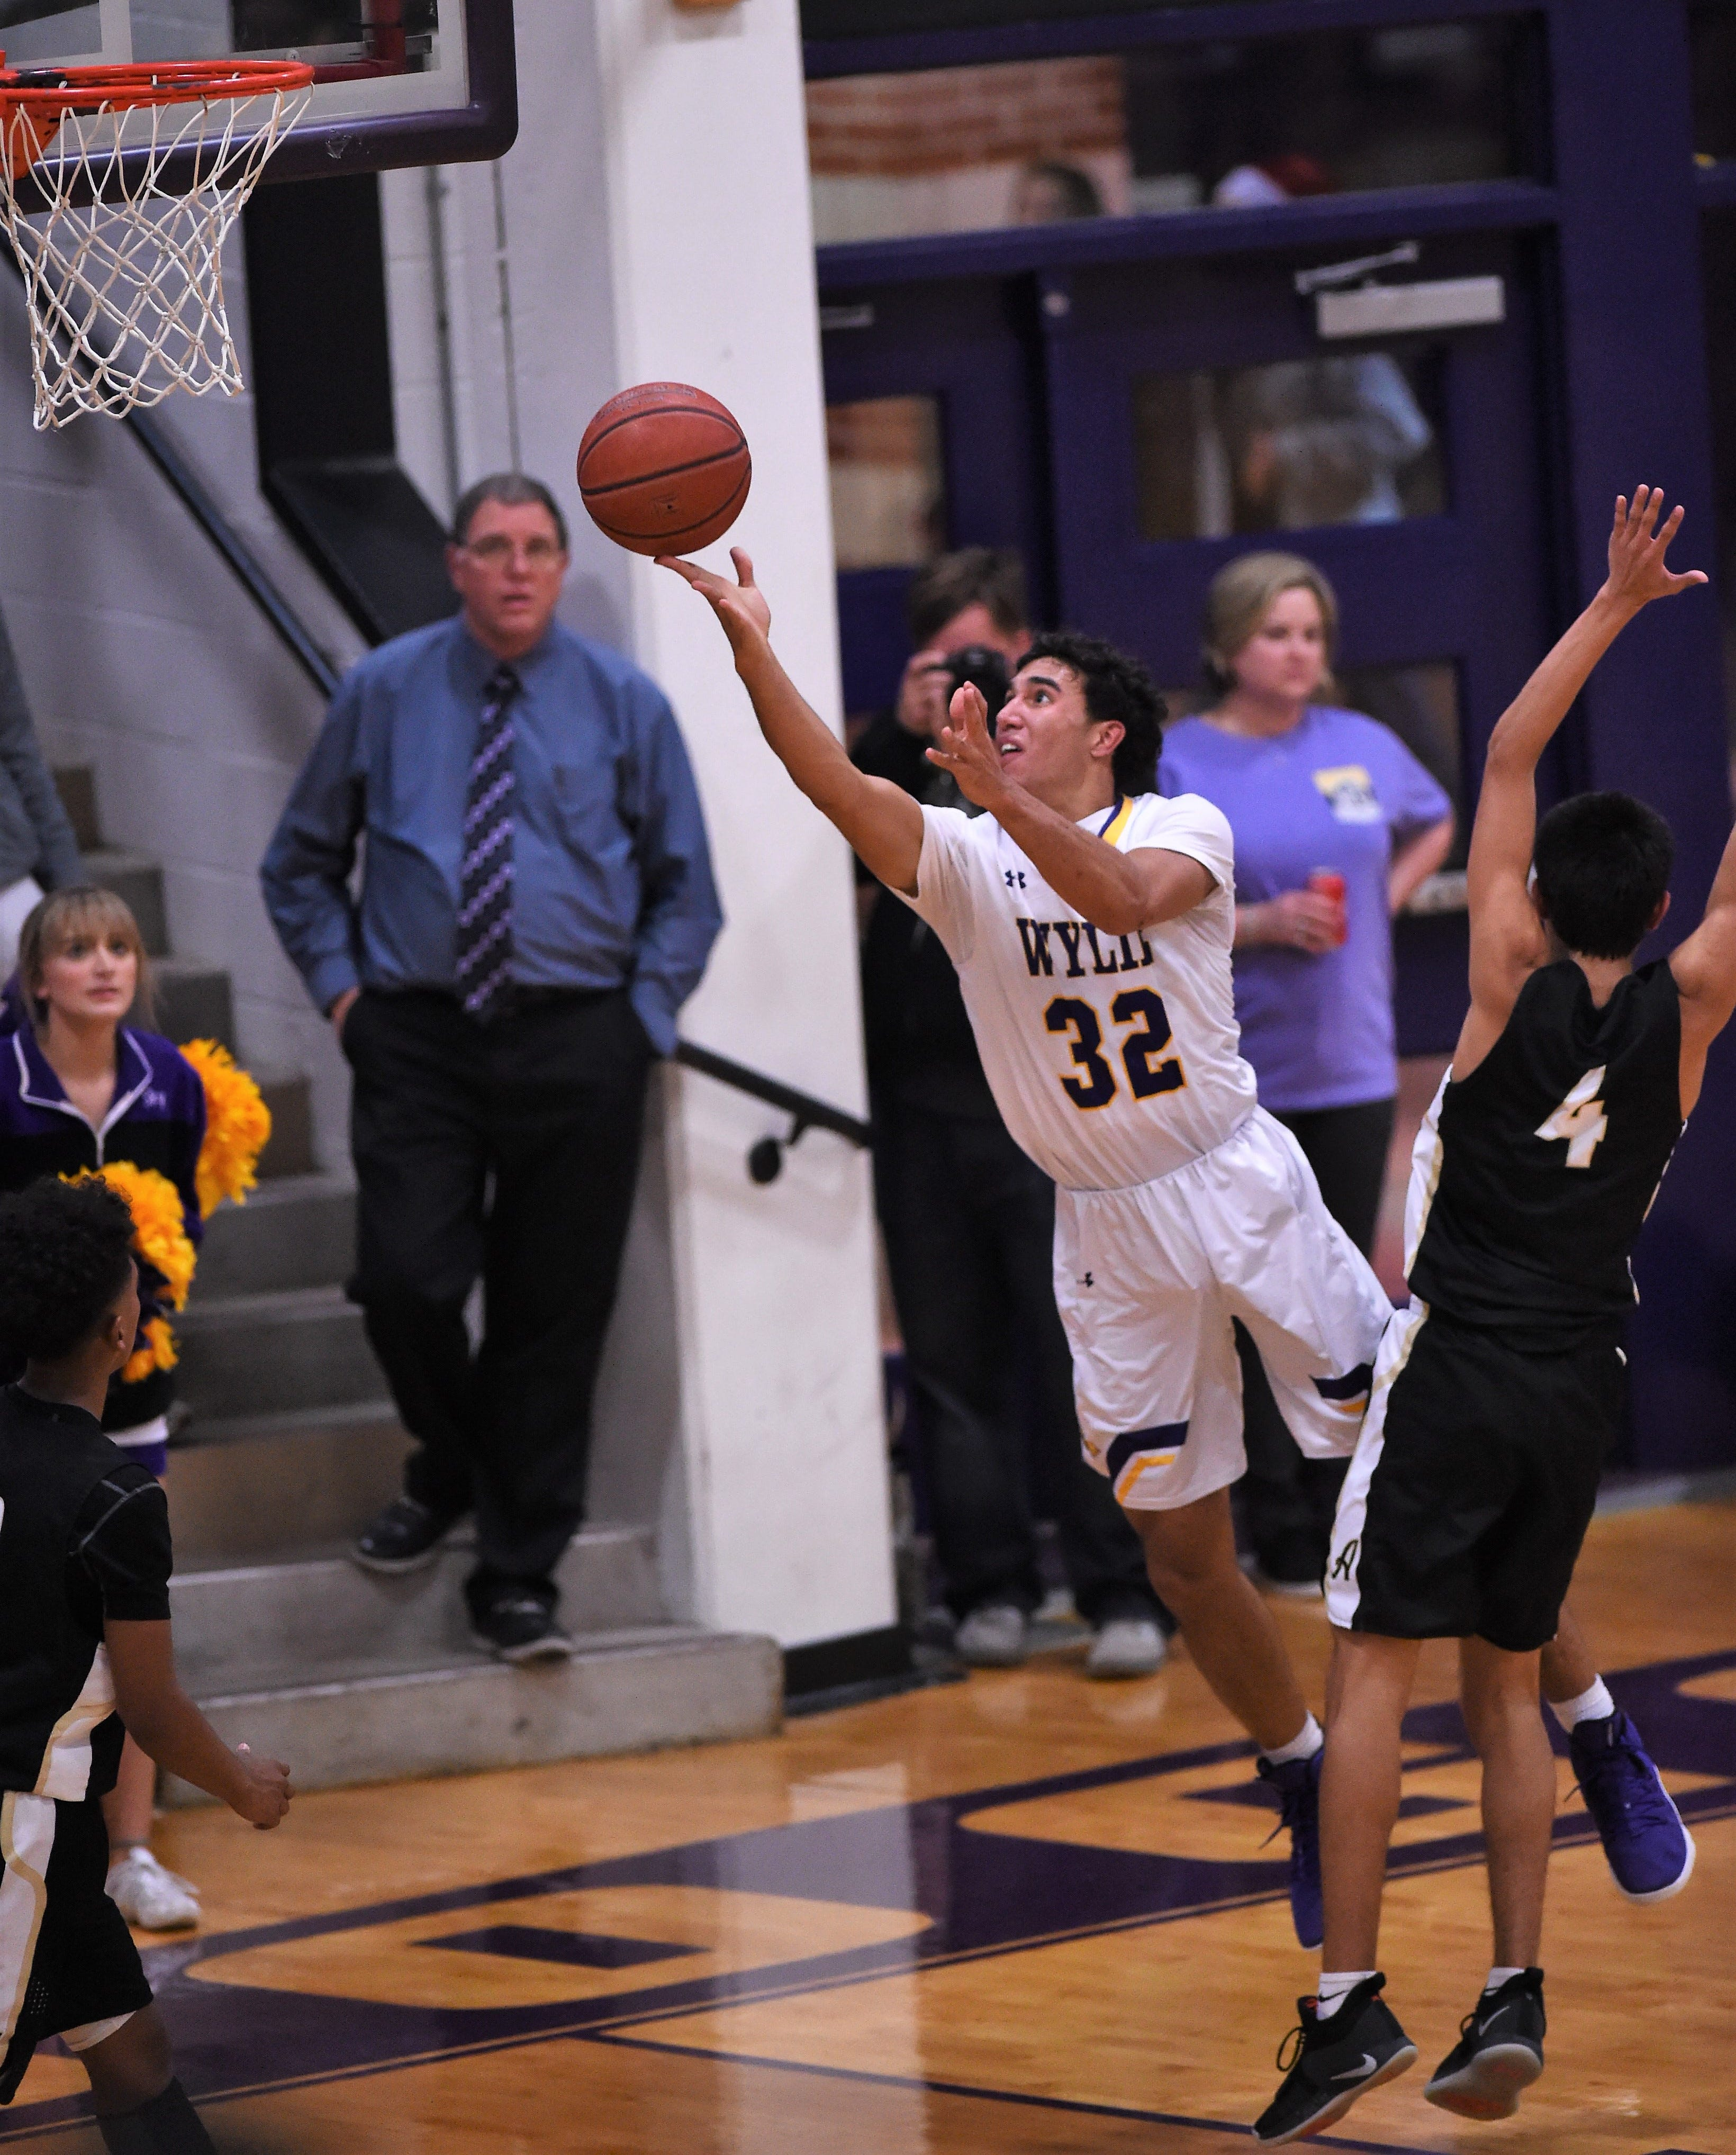 Wylie's Payton Brooks (32) puts up a shot around an Abilene High defender in a nondistrict game at Bulldog Gym on Tuesday, Dec. 11, 2018. The Eagles pulled out a 52-49 win.